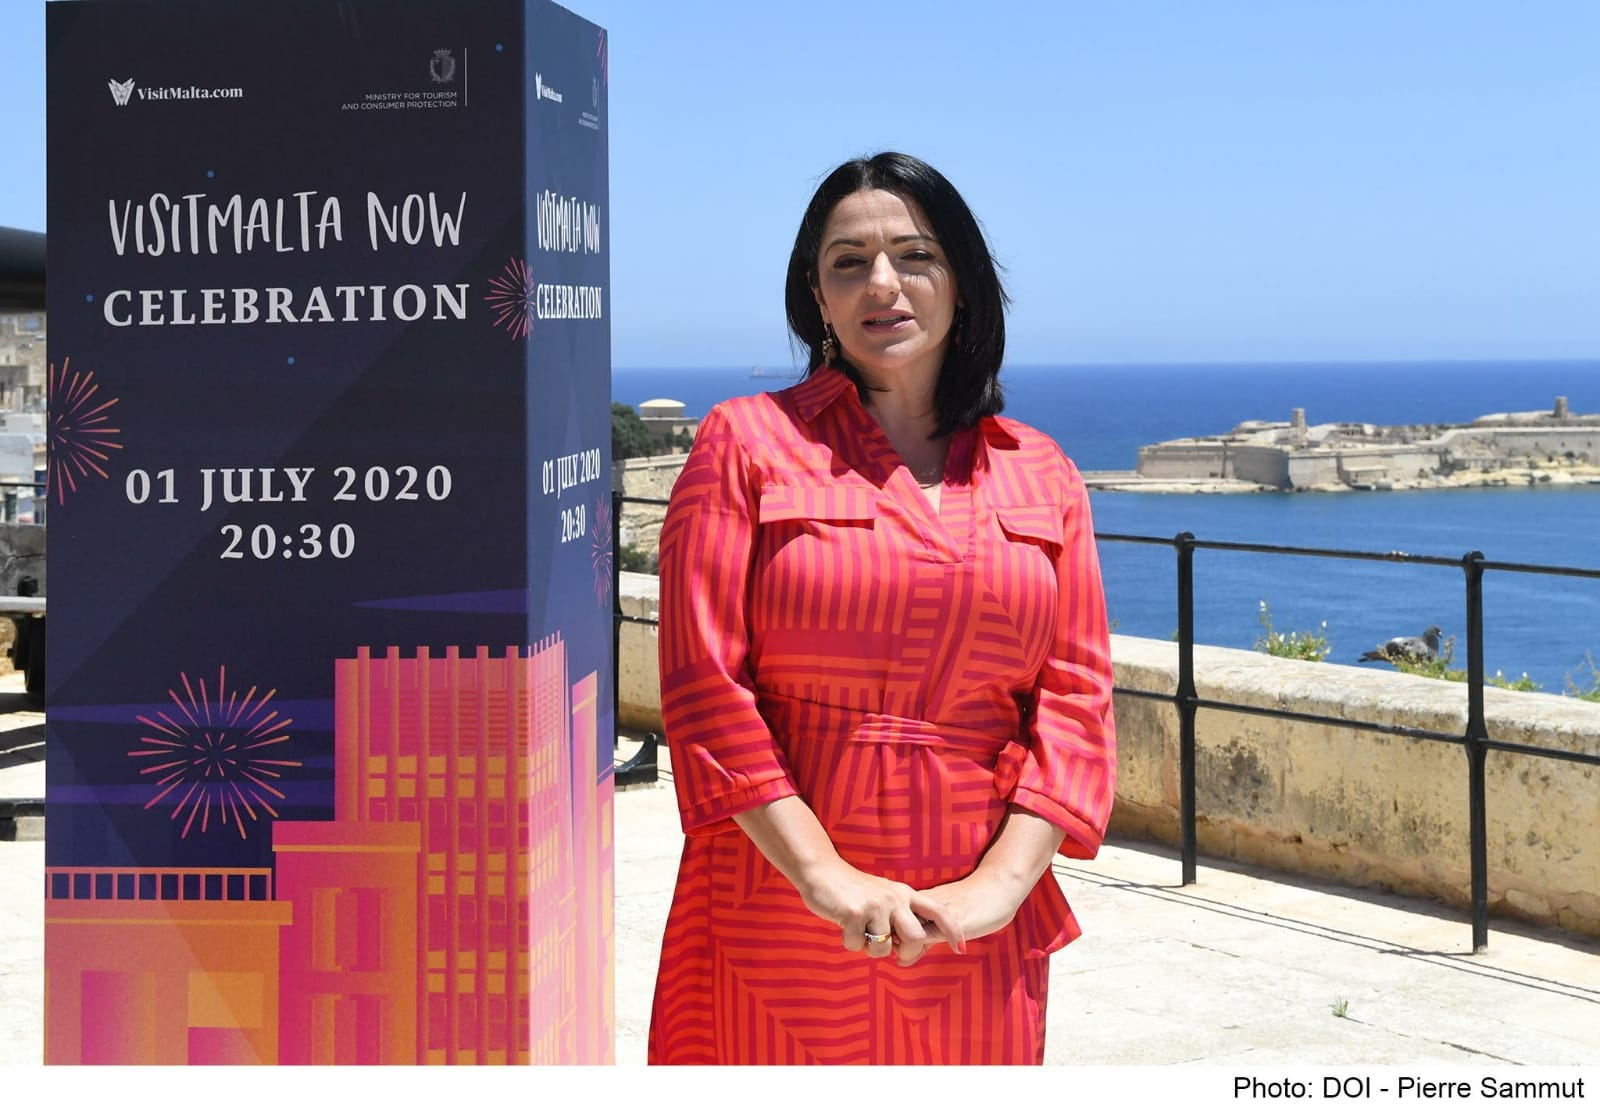 PRESS RELEASE BY THE MINISTRY FOR TOURISM AND CONSUMER PROTECTION  VisitMalta Now: Celebrating the reopening of Malta's borders